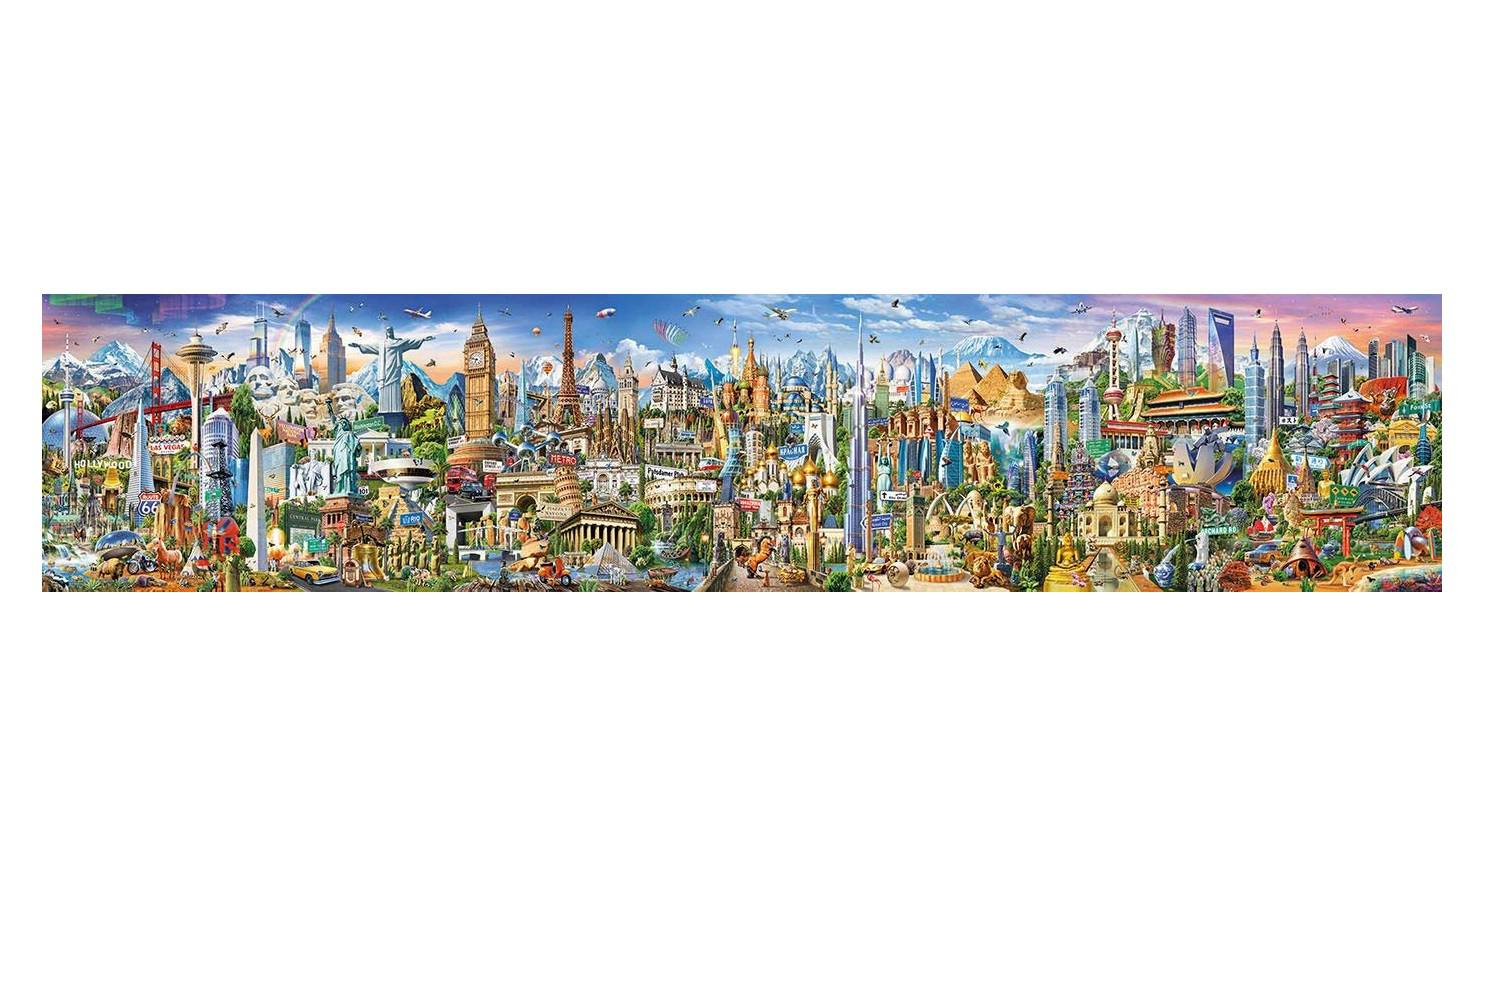 14 Of The World's Most Difficult Jigsaw Puzzles - Printable Jigsaw Puzzles Hard